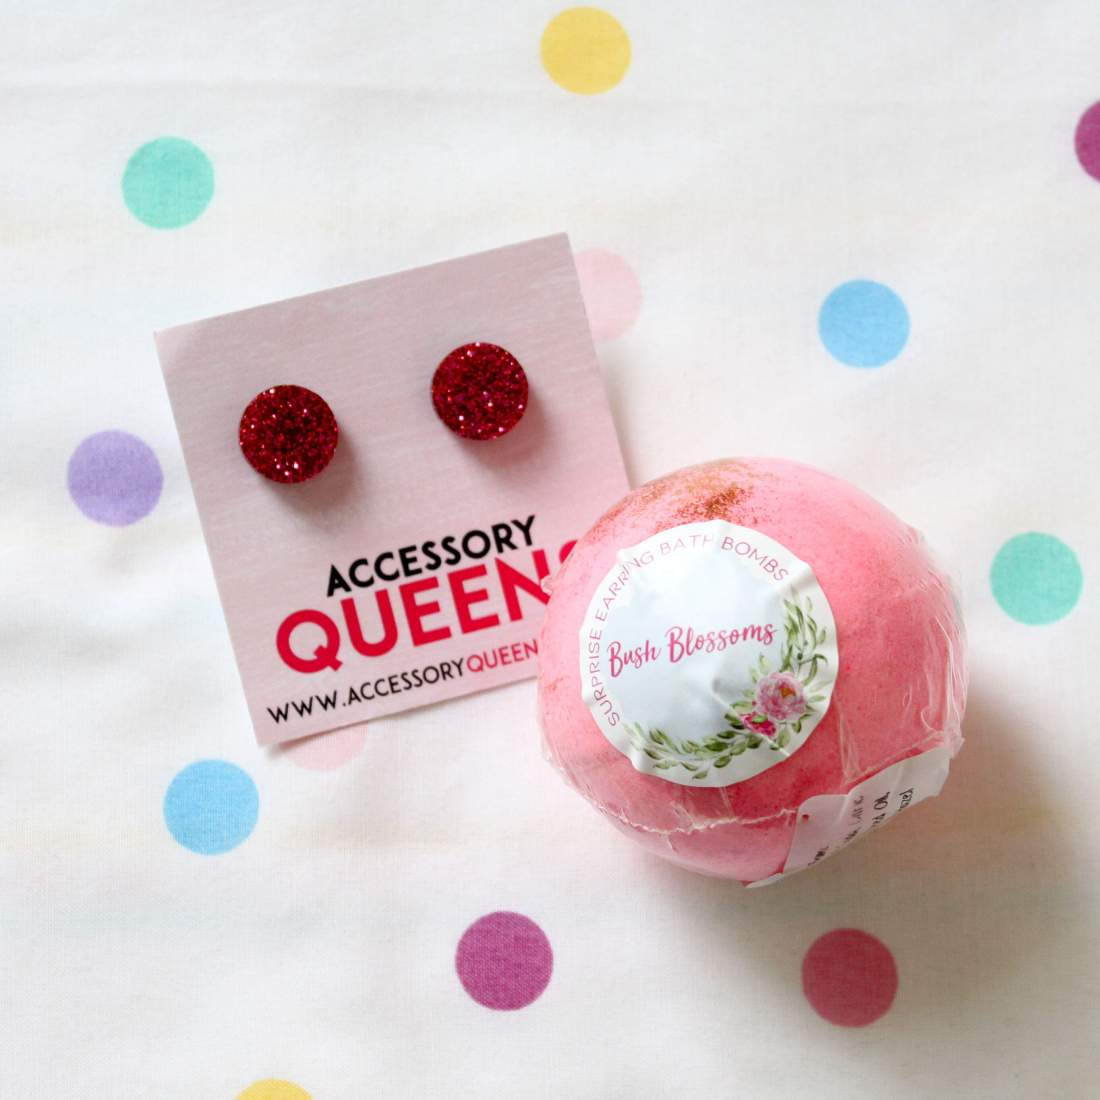 Earrings and Bath bomb by Accessory Queens